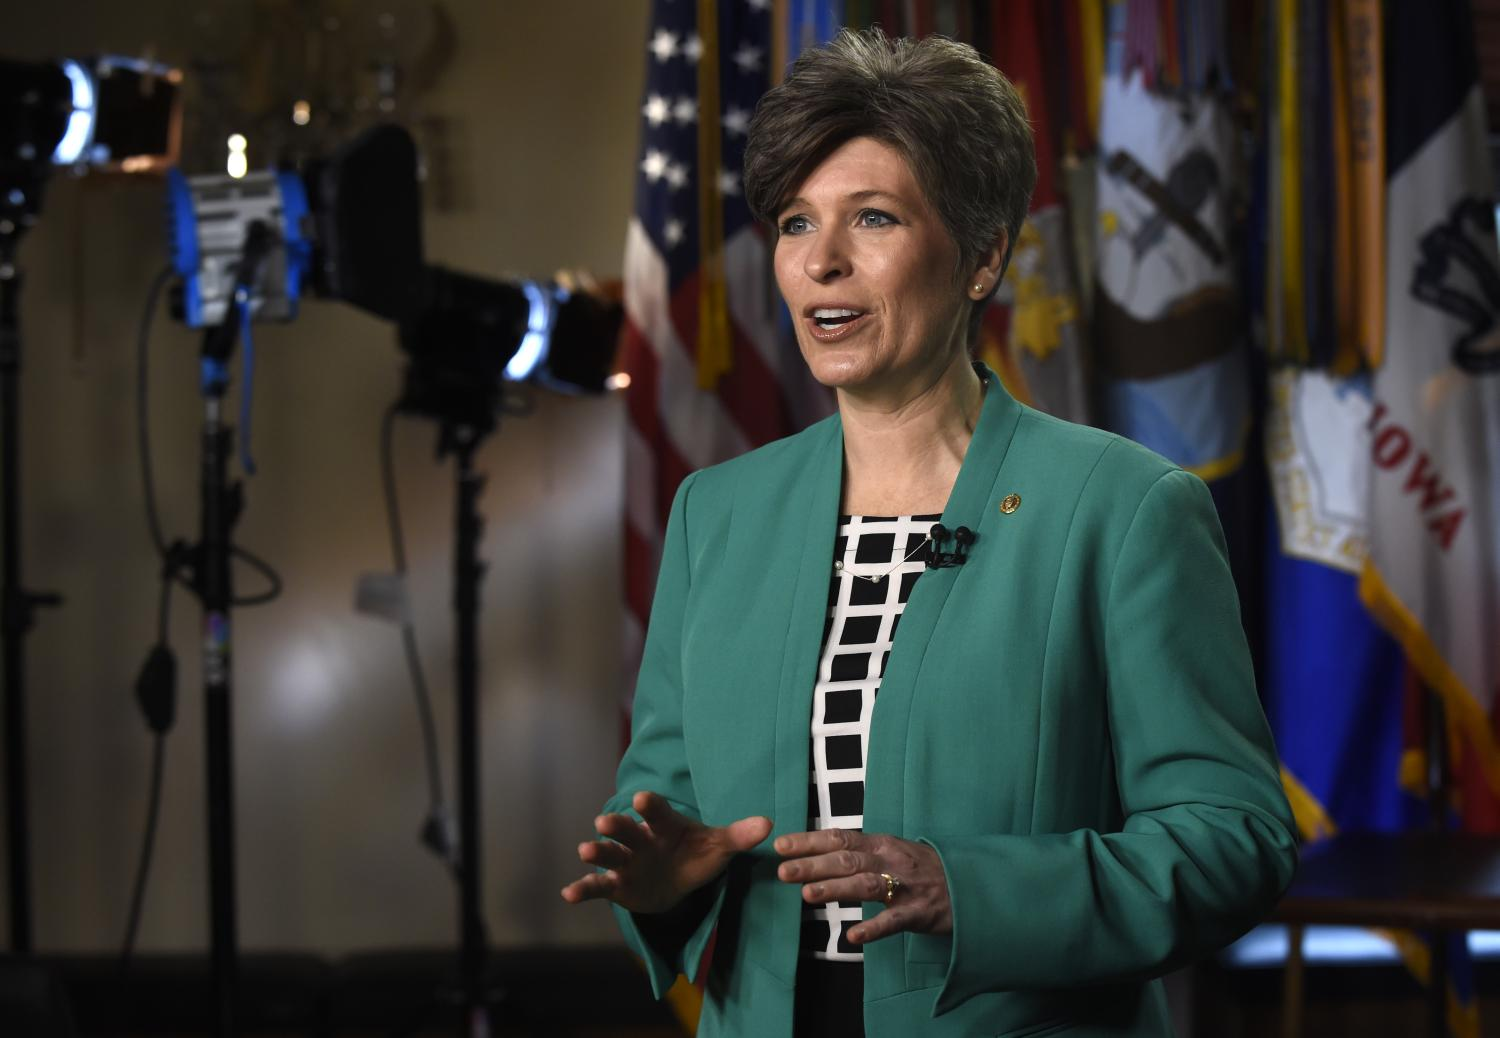 Sen. Joni Ernst, R-Iowa, gave the 2015 GOP rebuttal to the State of the Union.